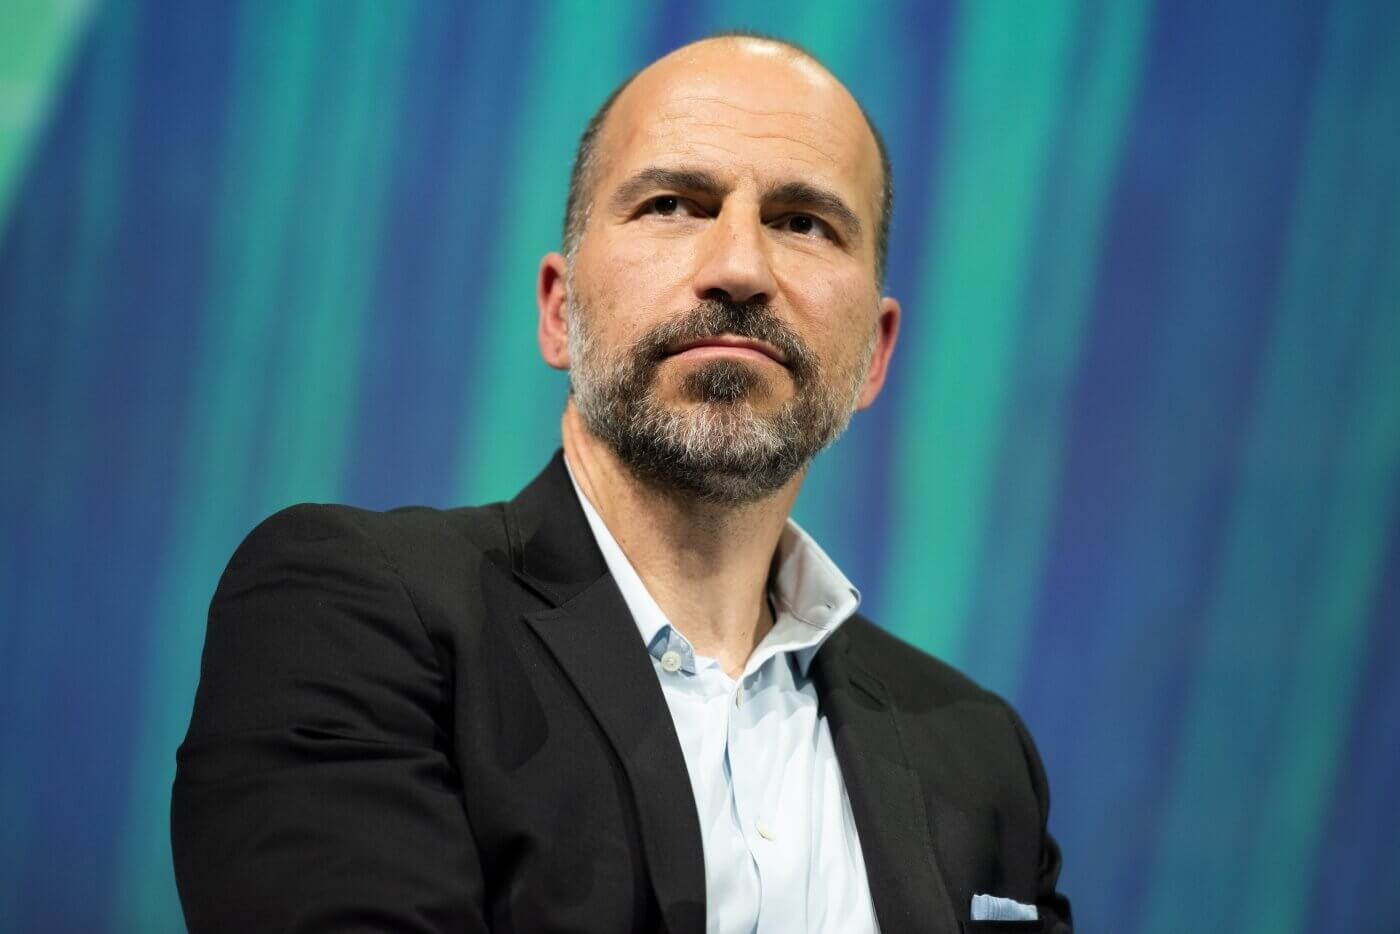 Uber lays off 3,000 more employees and closes 45 offices